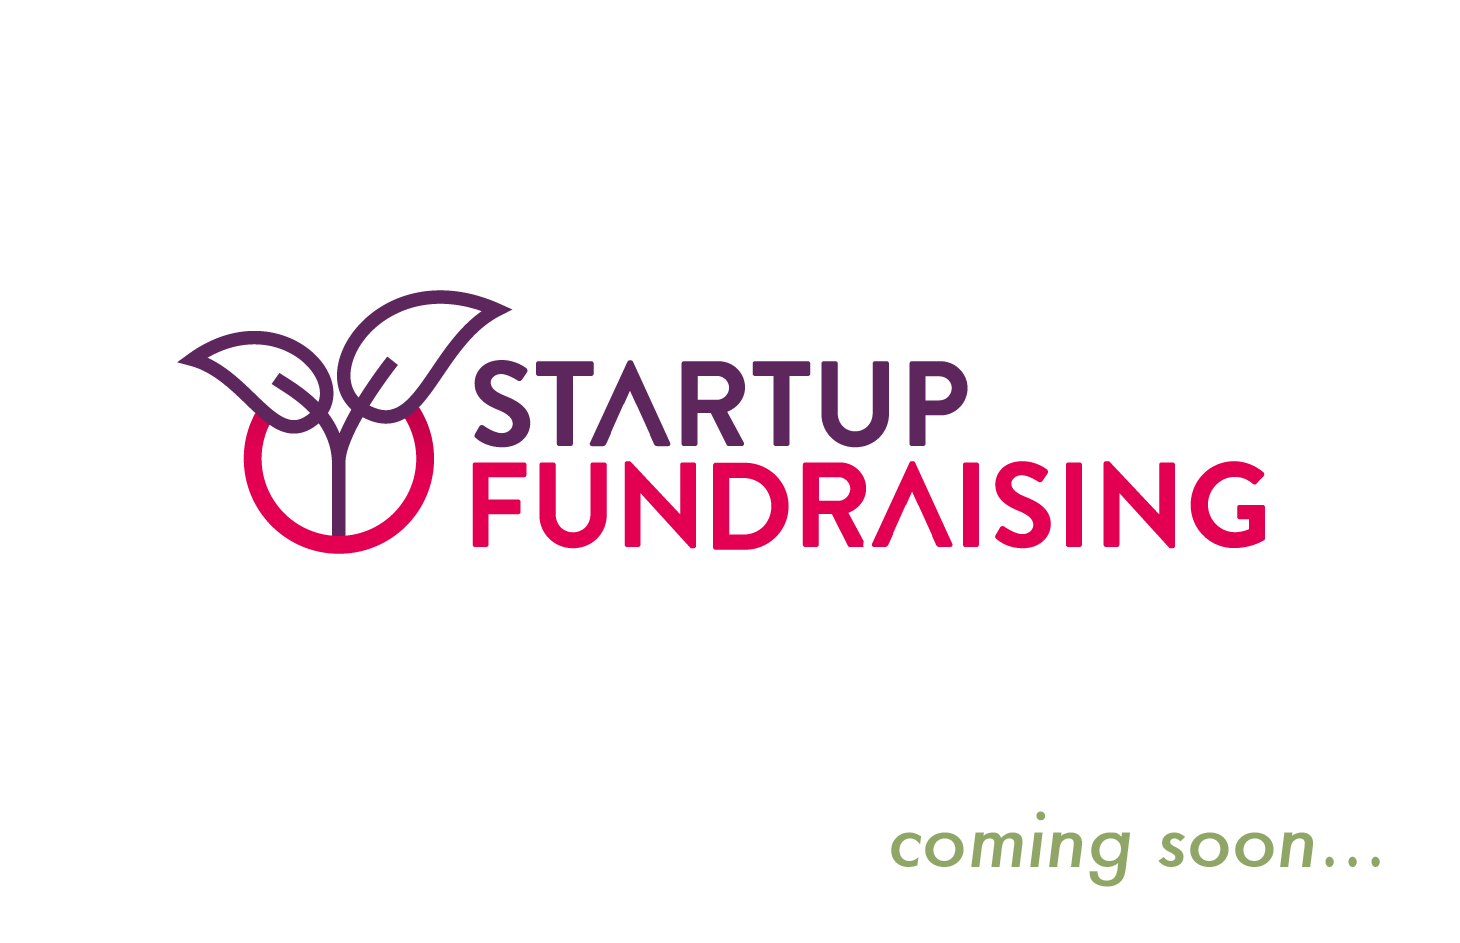 STARTUP-FUNDRAISING-coming soon